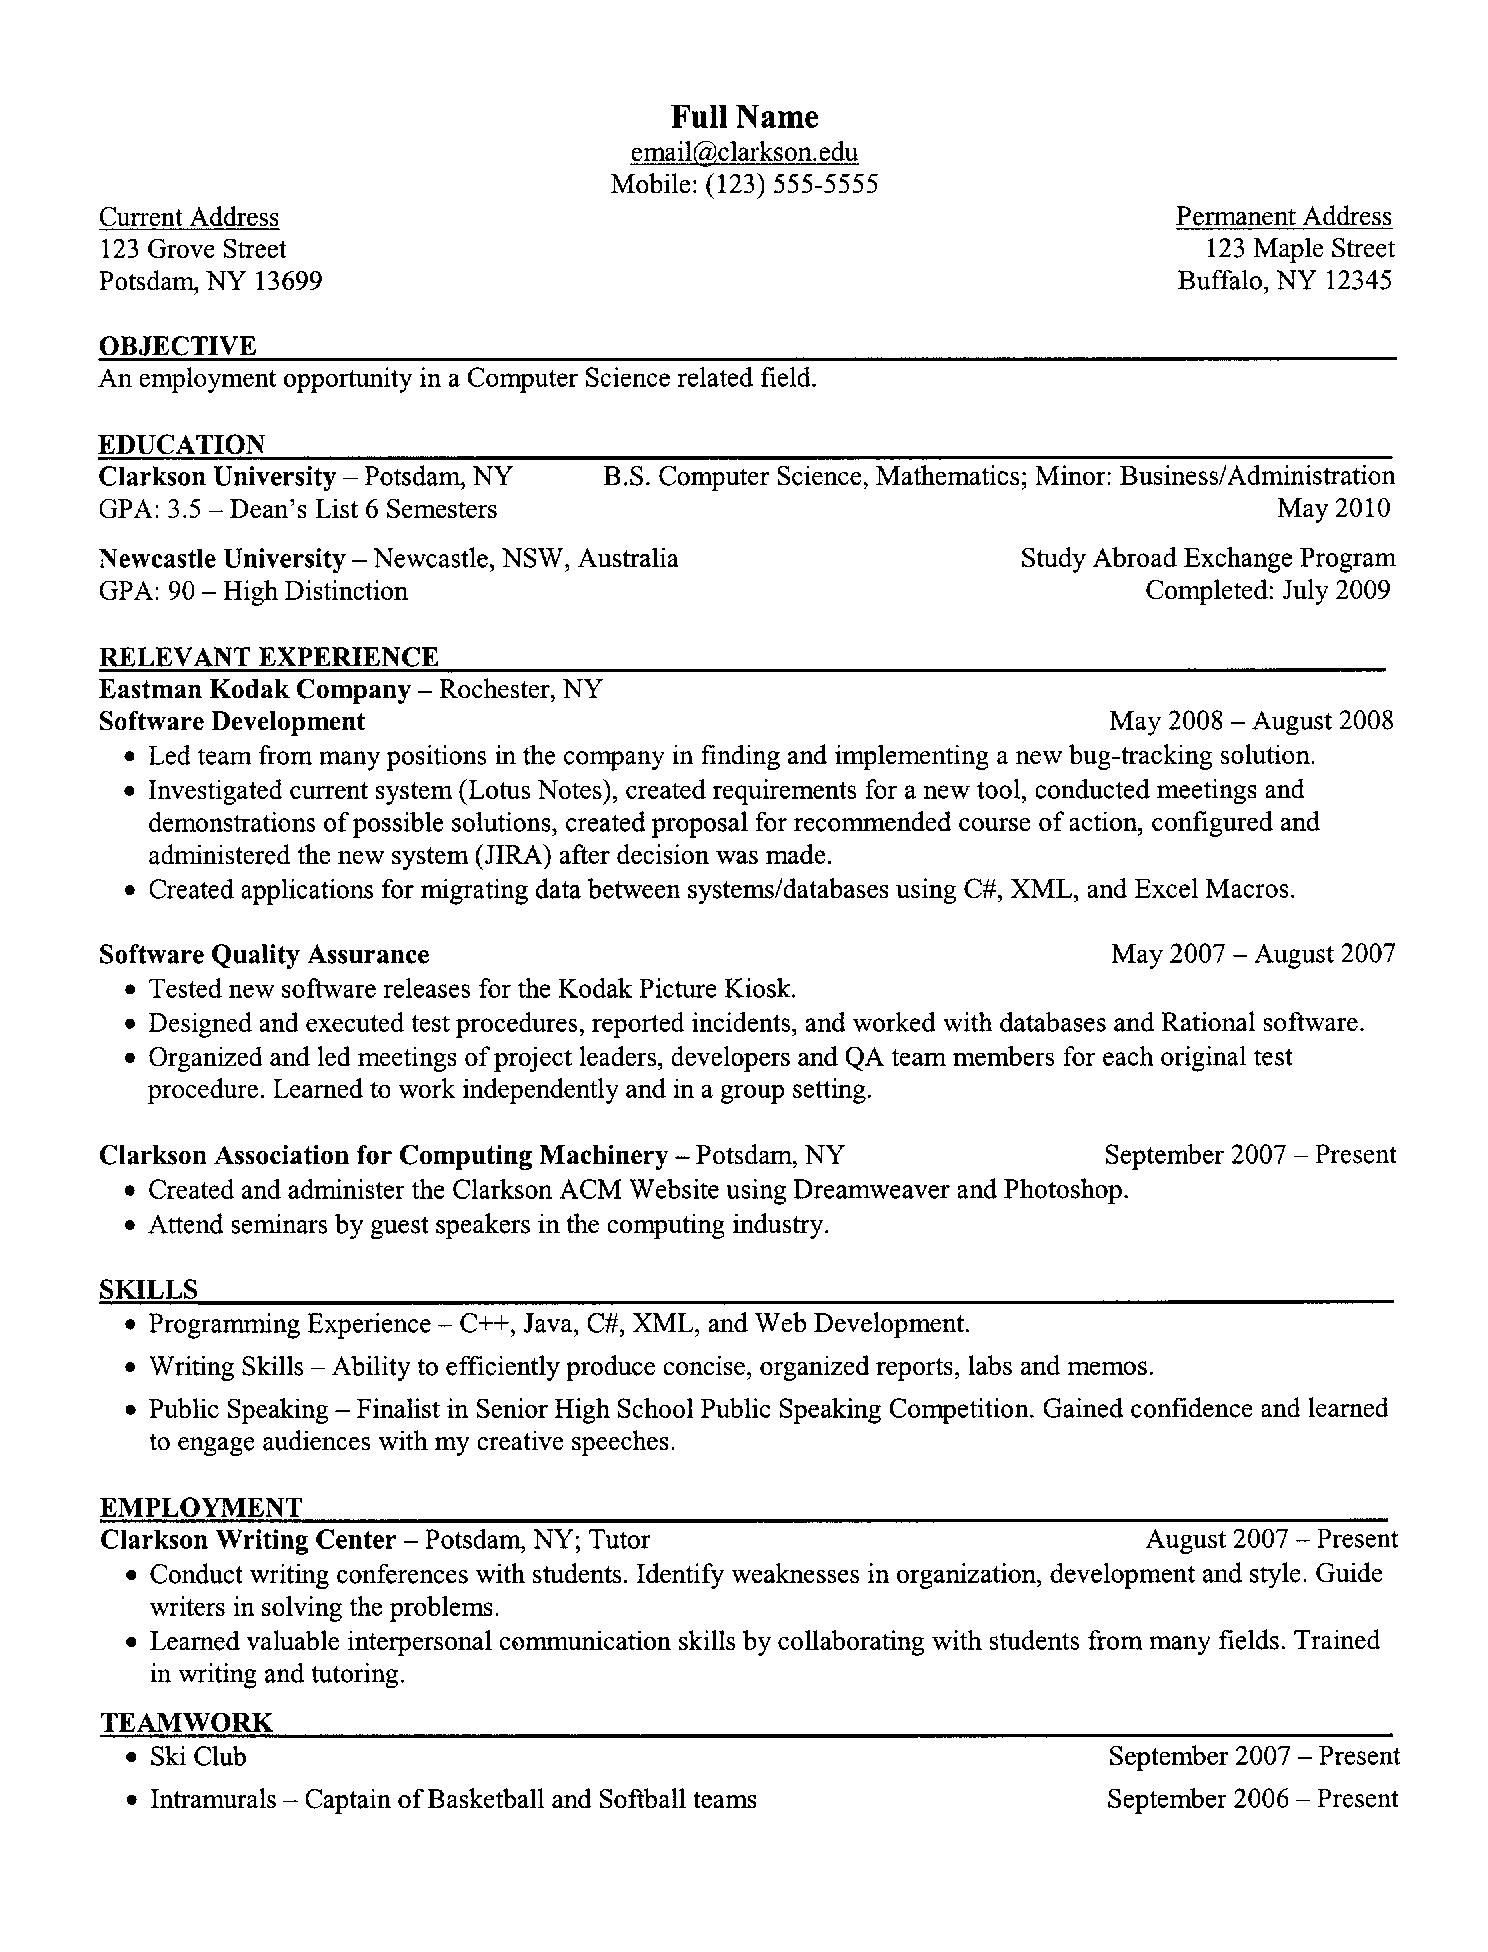 Pin By Etta Giselle On Resume Examples No Experience Pinterest